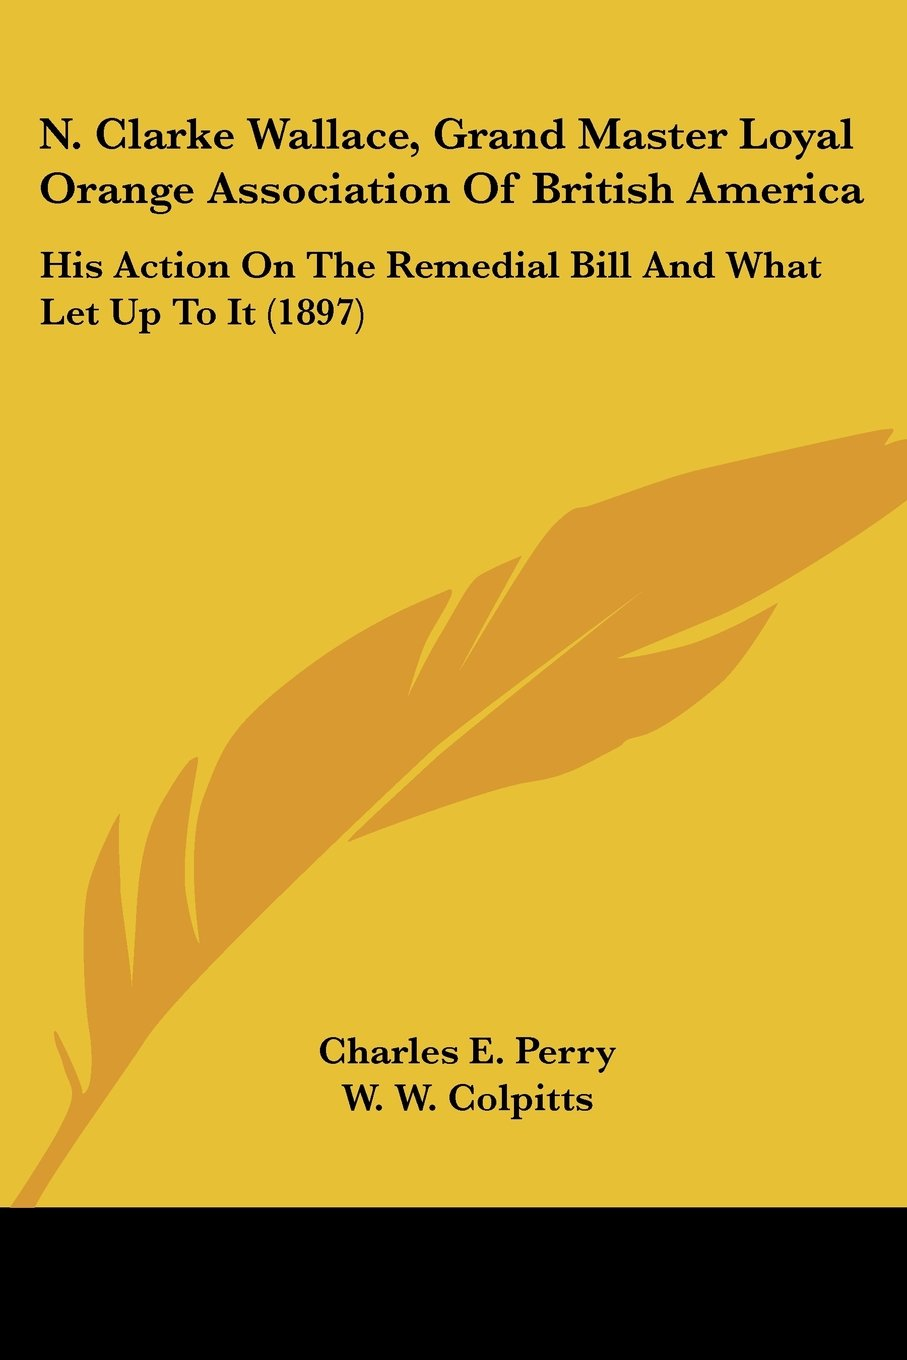 N. Clarke Wallace, Grand Master Loyal Orange Association Of British America: His Action On The Remedial Bill And What Let Up To It (1897) PDF